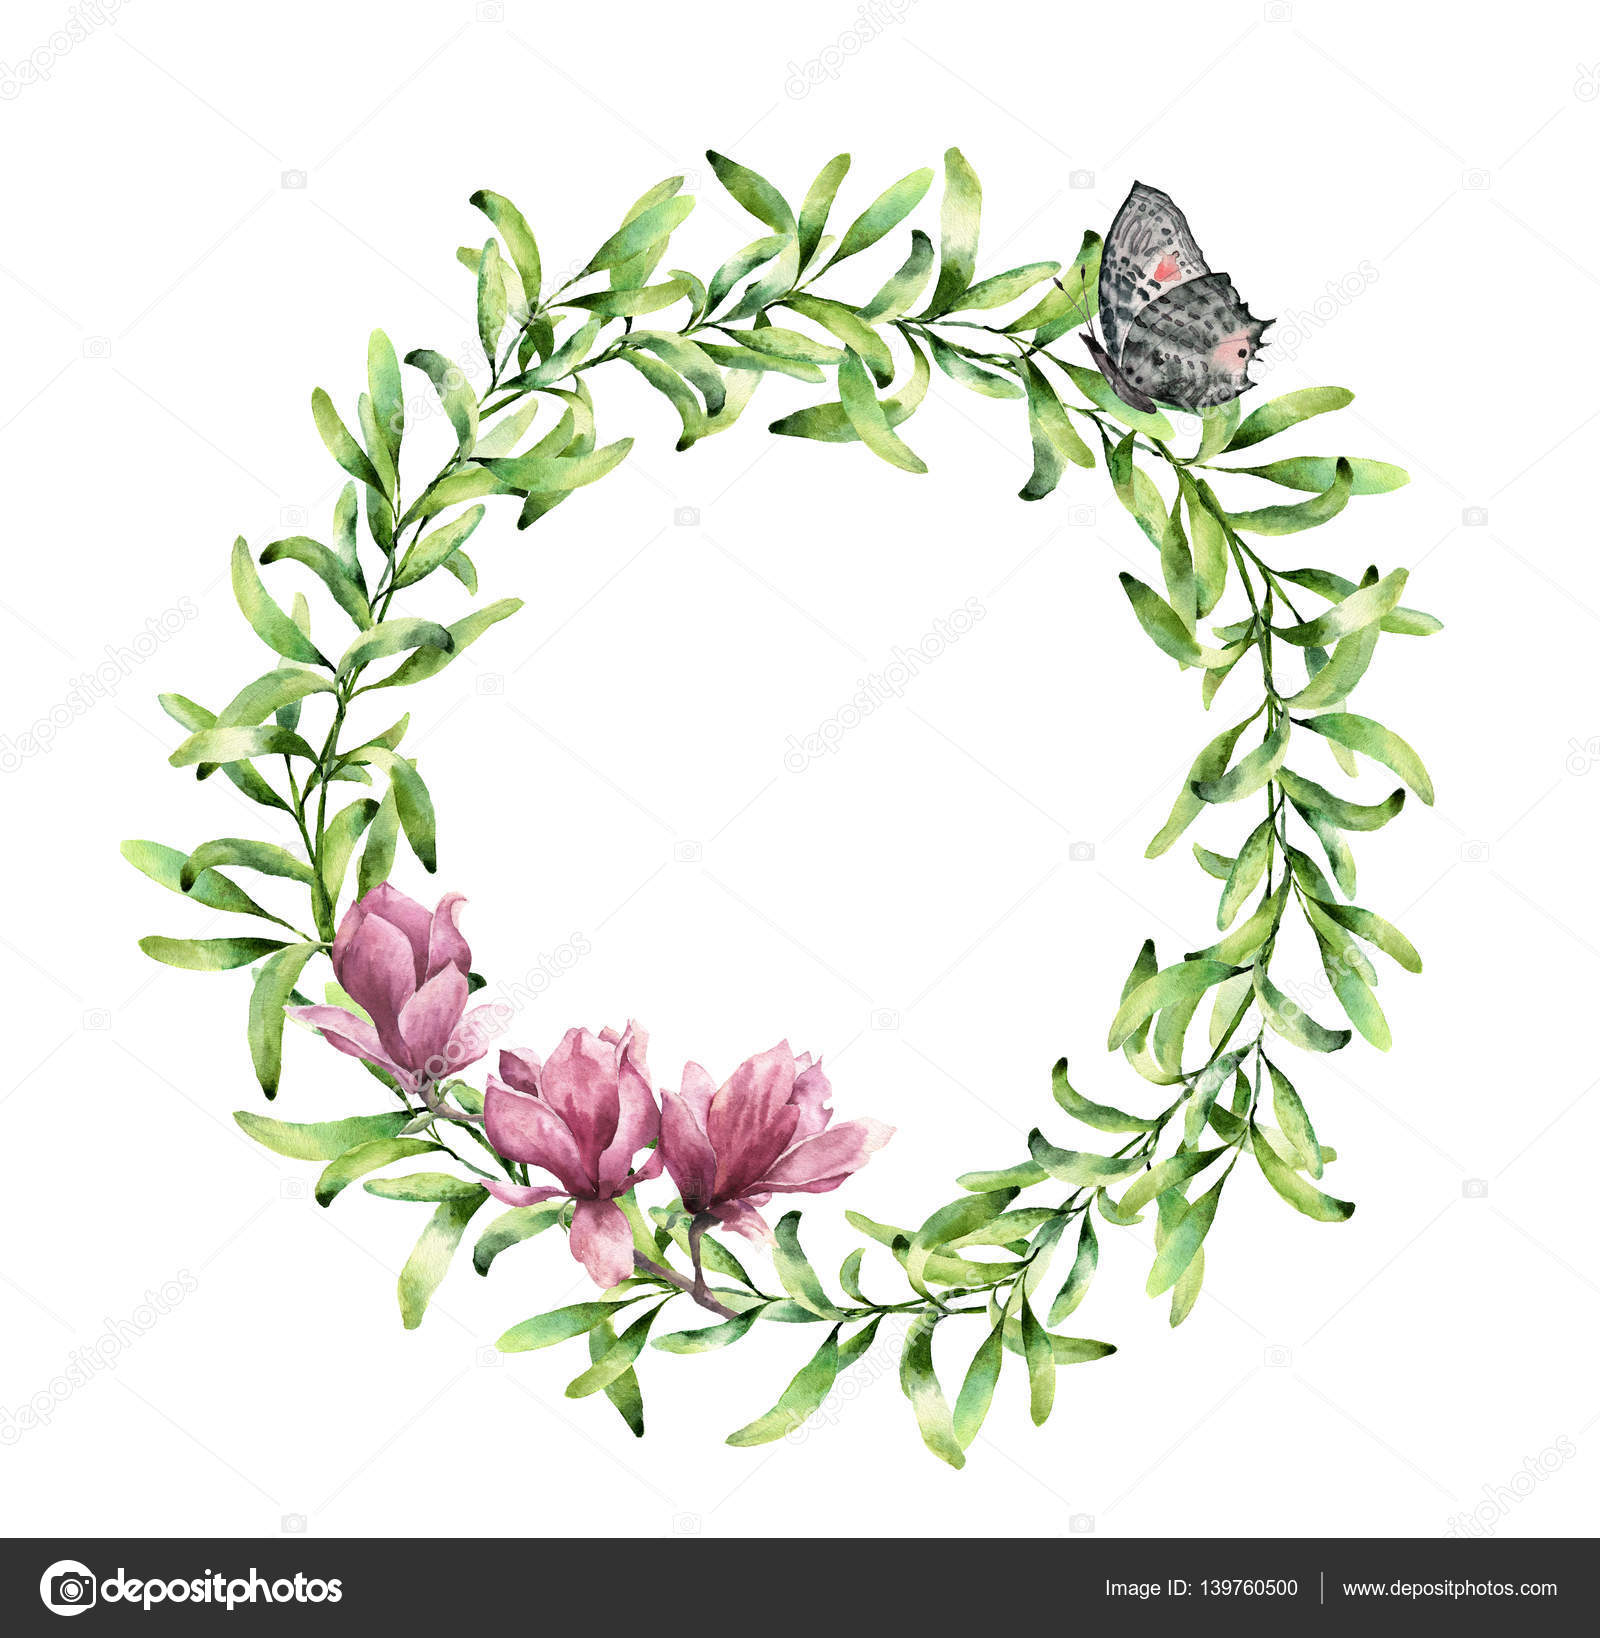 Watercolor Greenery Wreath With Magnolia And Butterfly Hand Painted Floral Border Isolated On